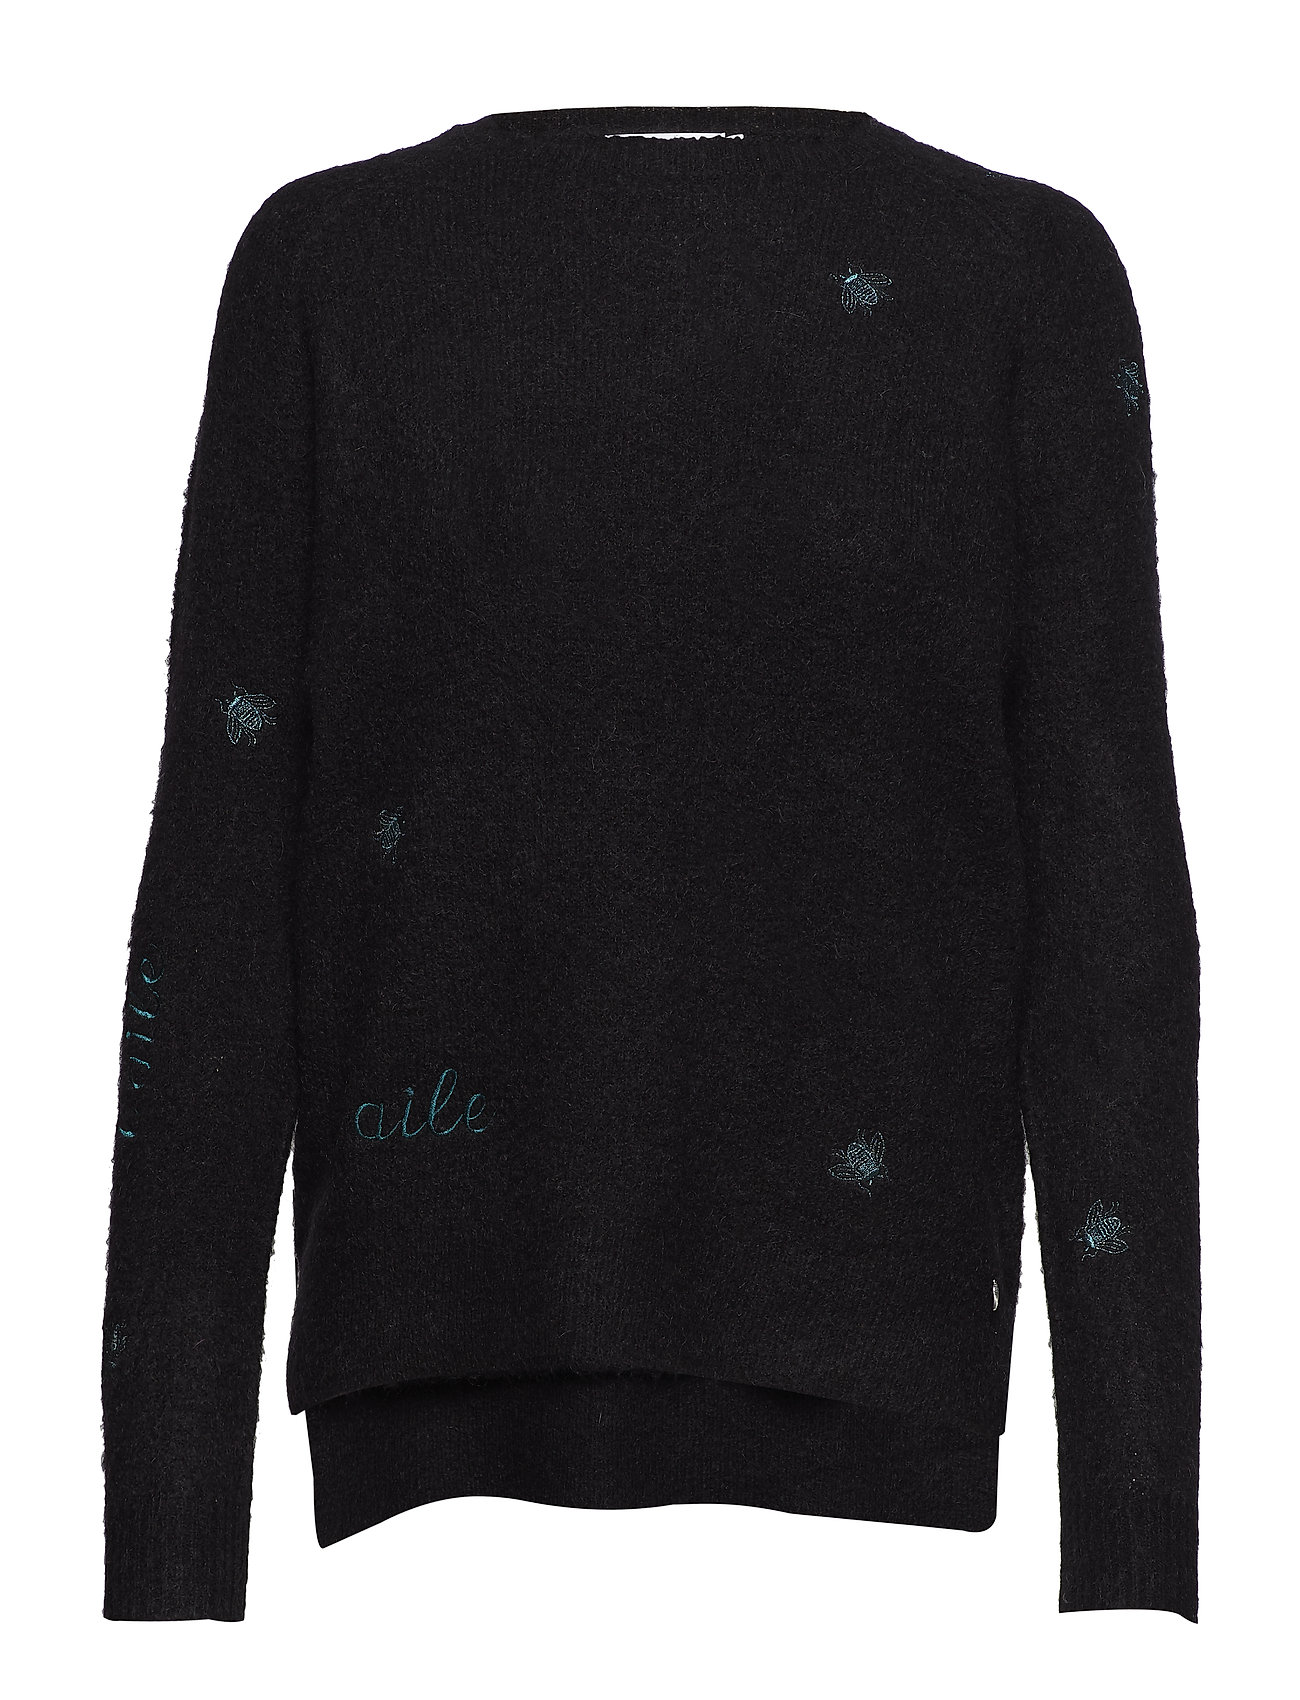 Sweater Mohair WEmbroiderblackCoster Knit In Copenhagen ygf6IYv7b